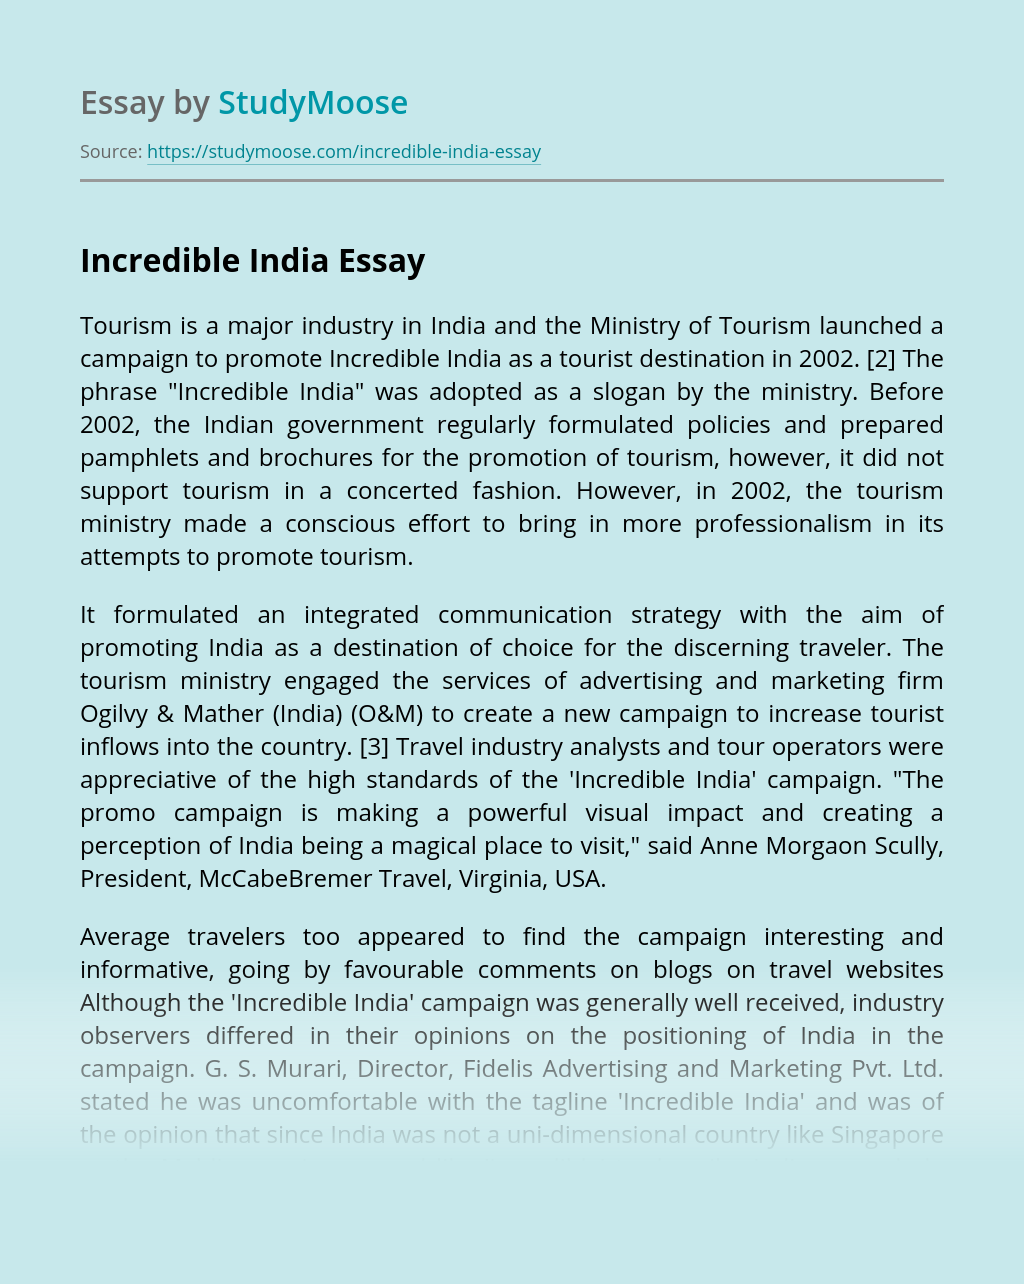 Essay on Incredible India - Words